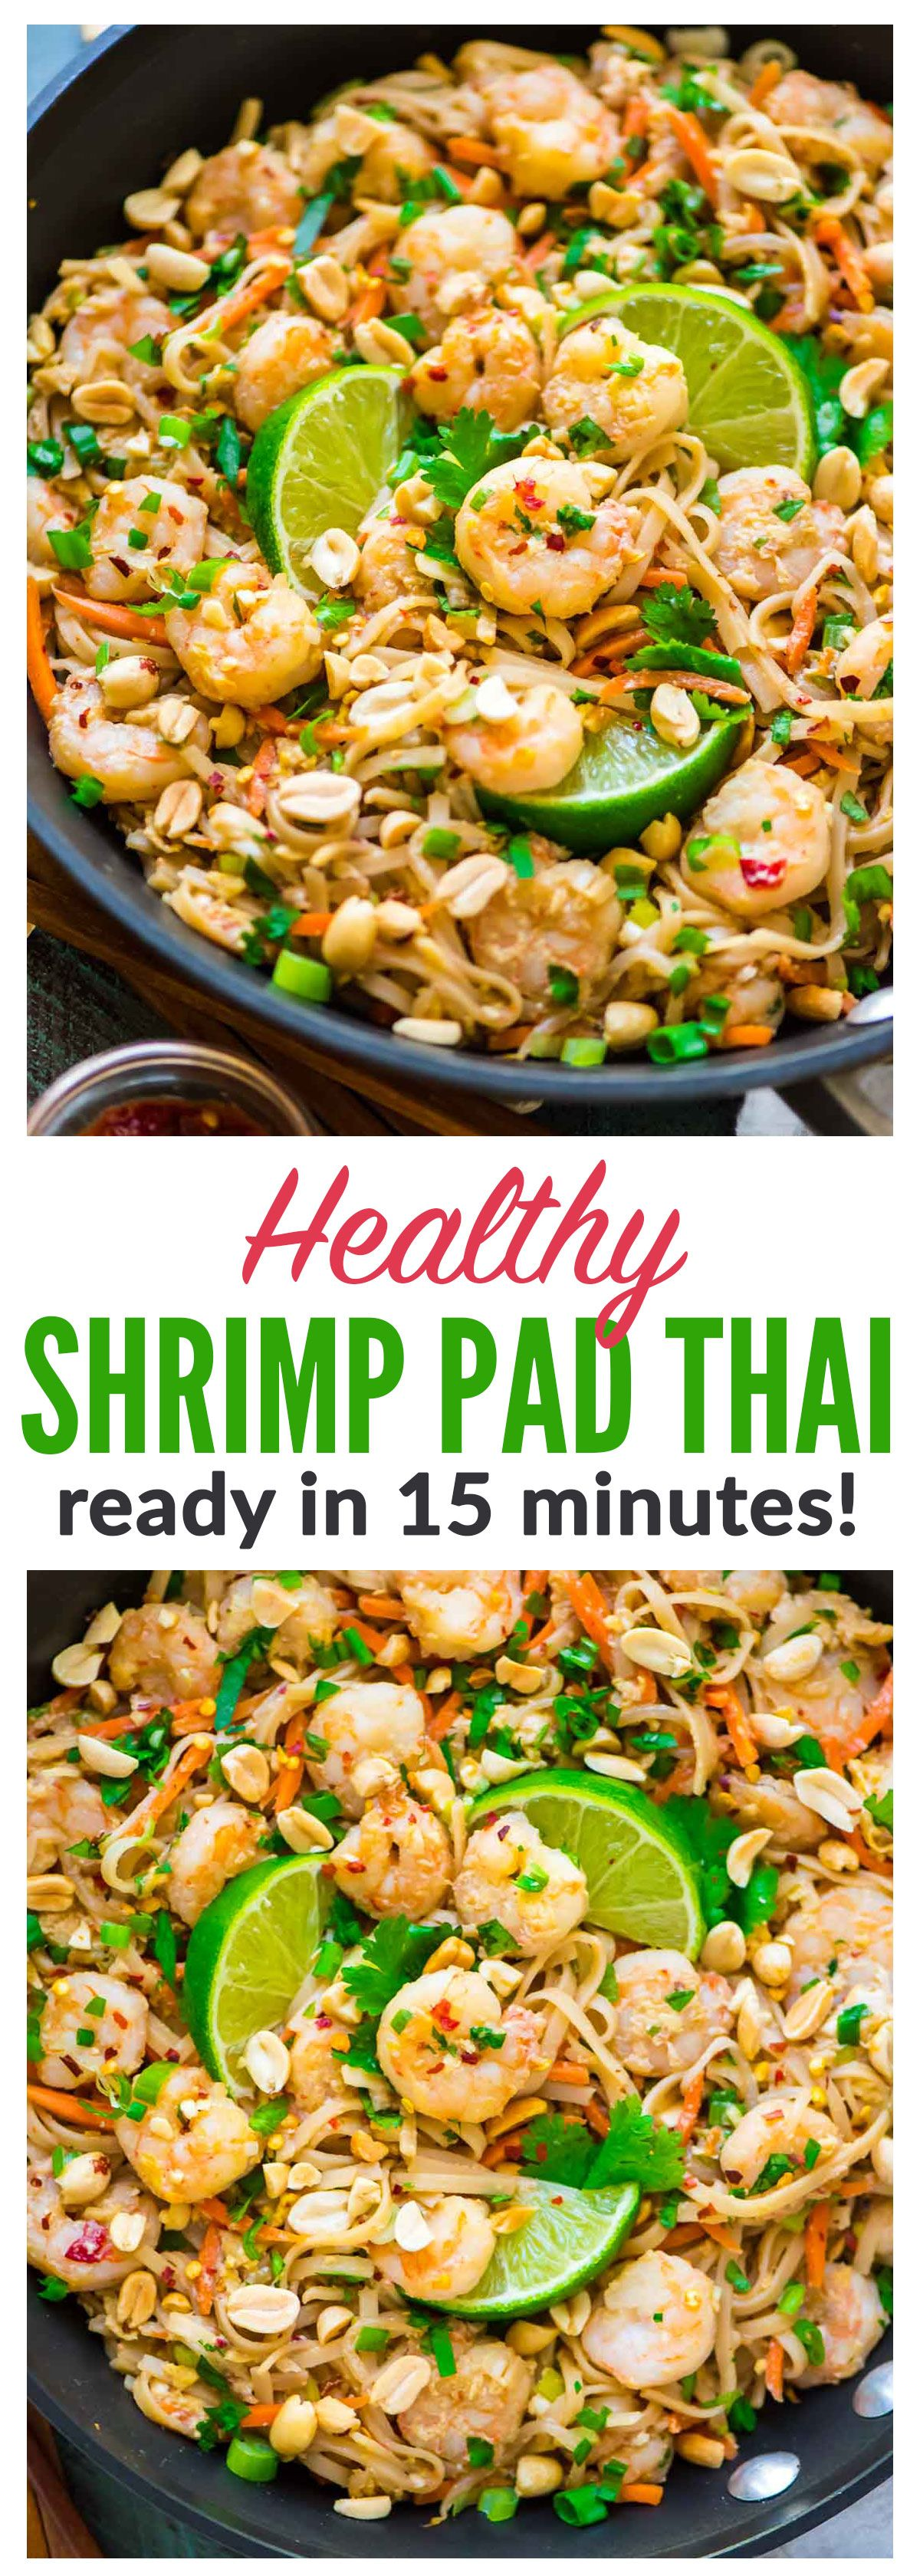 Healthy Shrimp Pad Thai Easy And So Delicious Ready In 15 Minutes